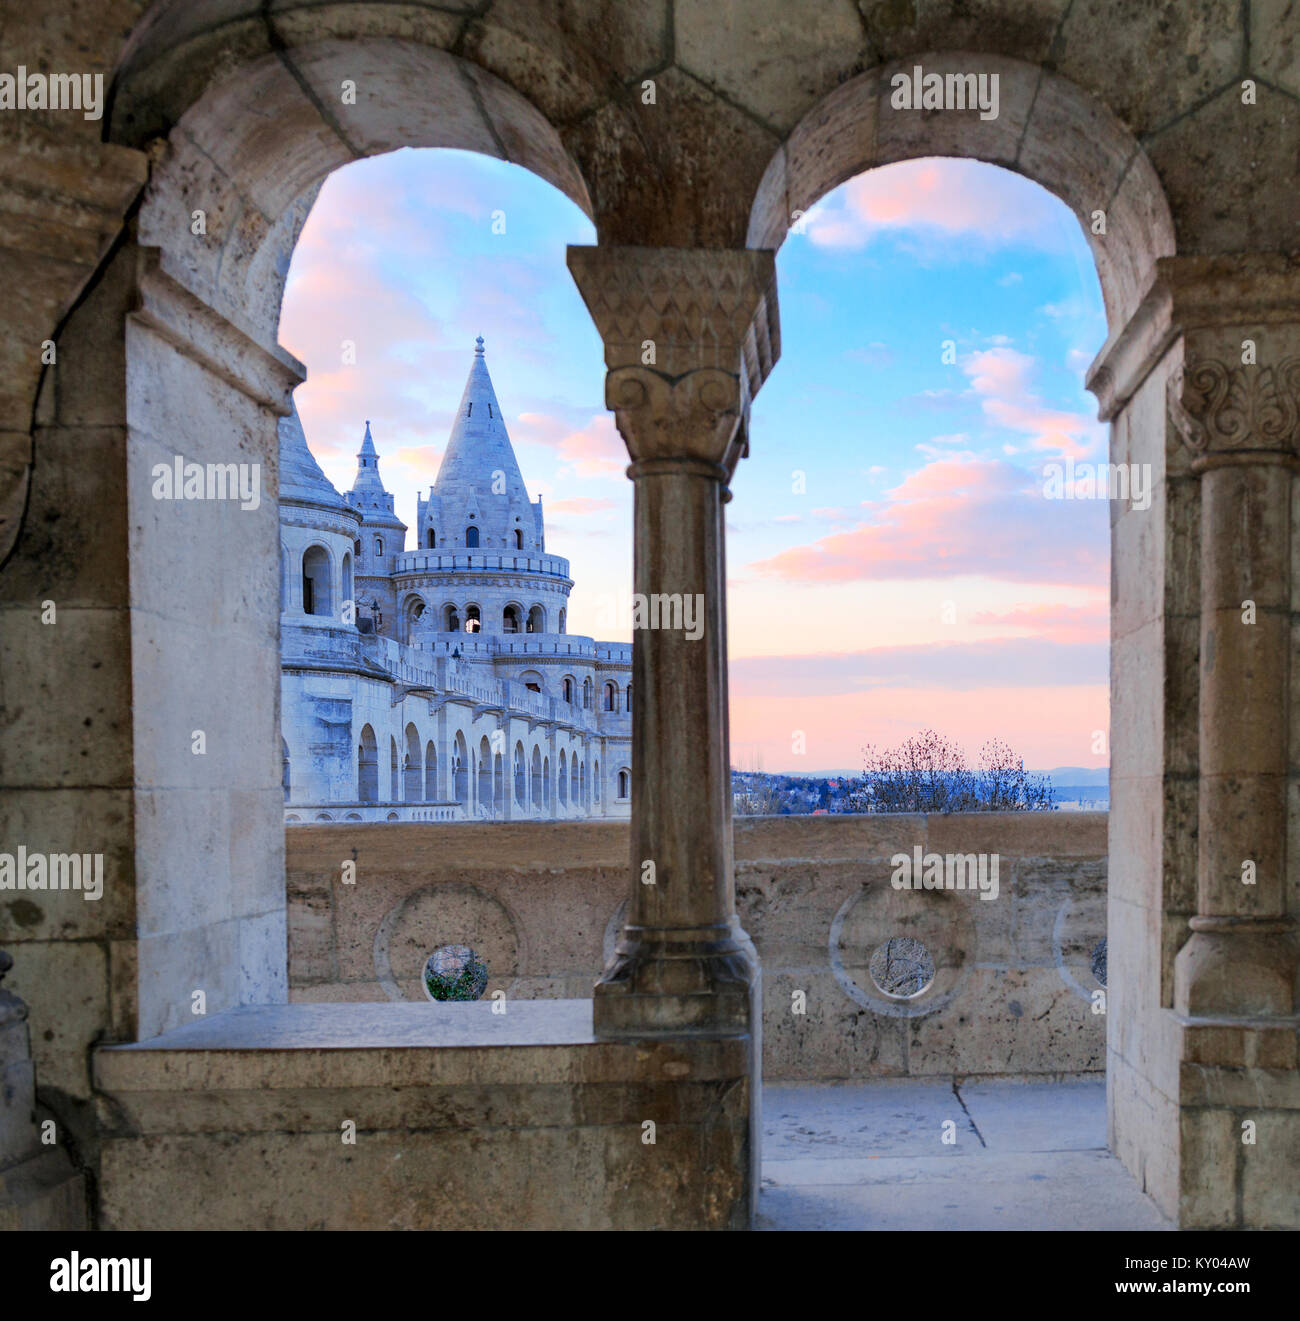 Fisherman's Bastion in Budapest, Hungary. Early morning sky and one of the towers through open windows of another - Stock Image